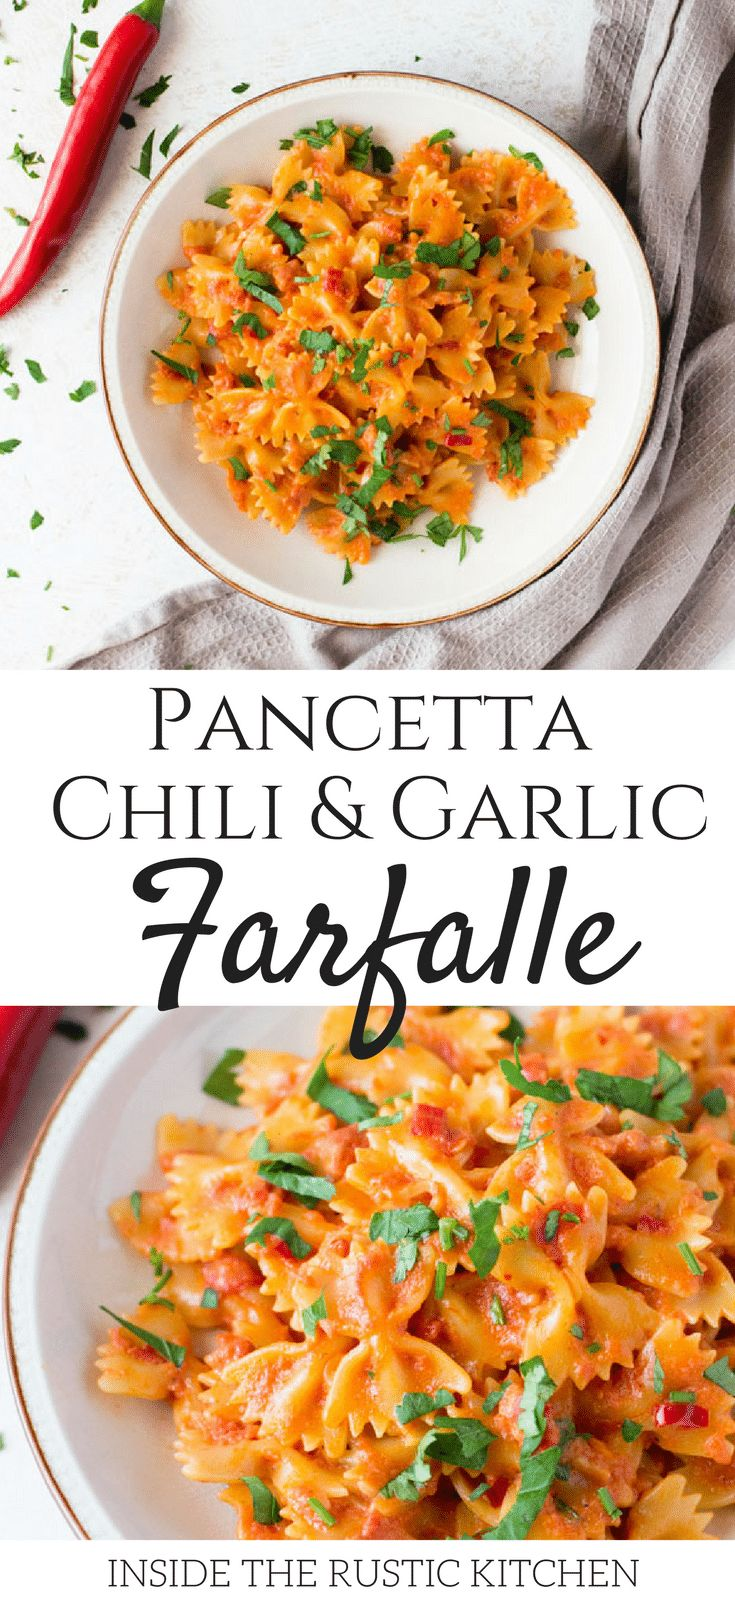 A delicious and simple farfalle pasta with pancetta recipe with fresh chili, garlic and a dash of cream. This simple pasta dish makes a great quick weeknight meal that's delicious eaten hot or cold. Italian pasta recipes insidetherustickitchen